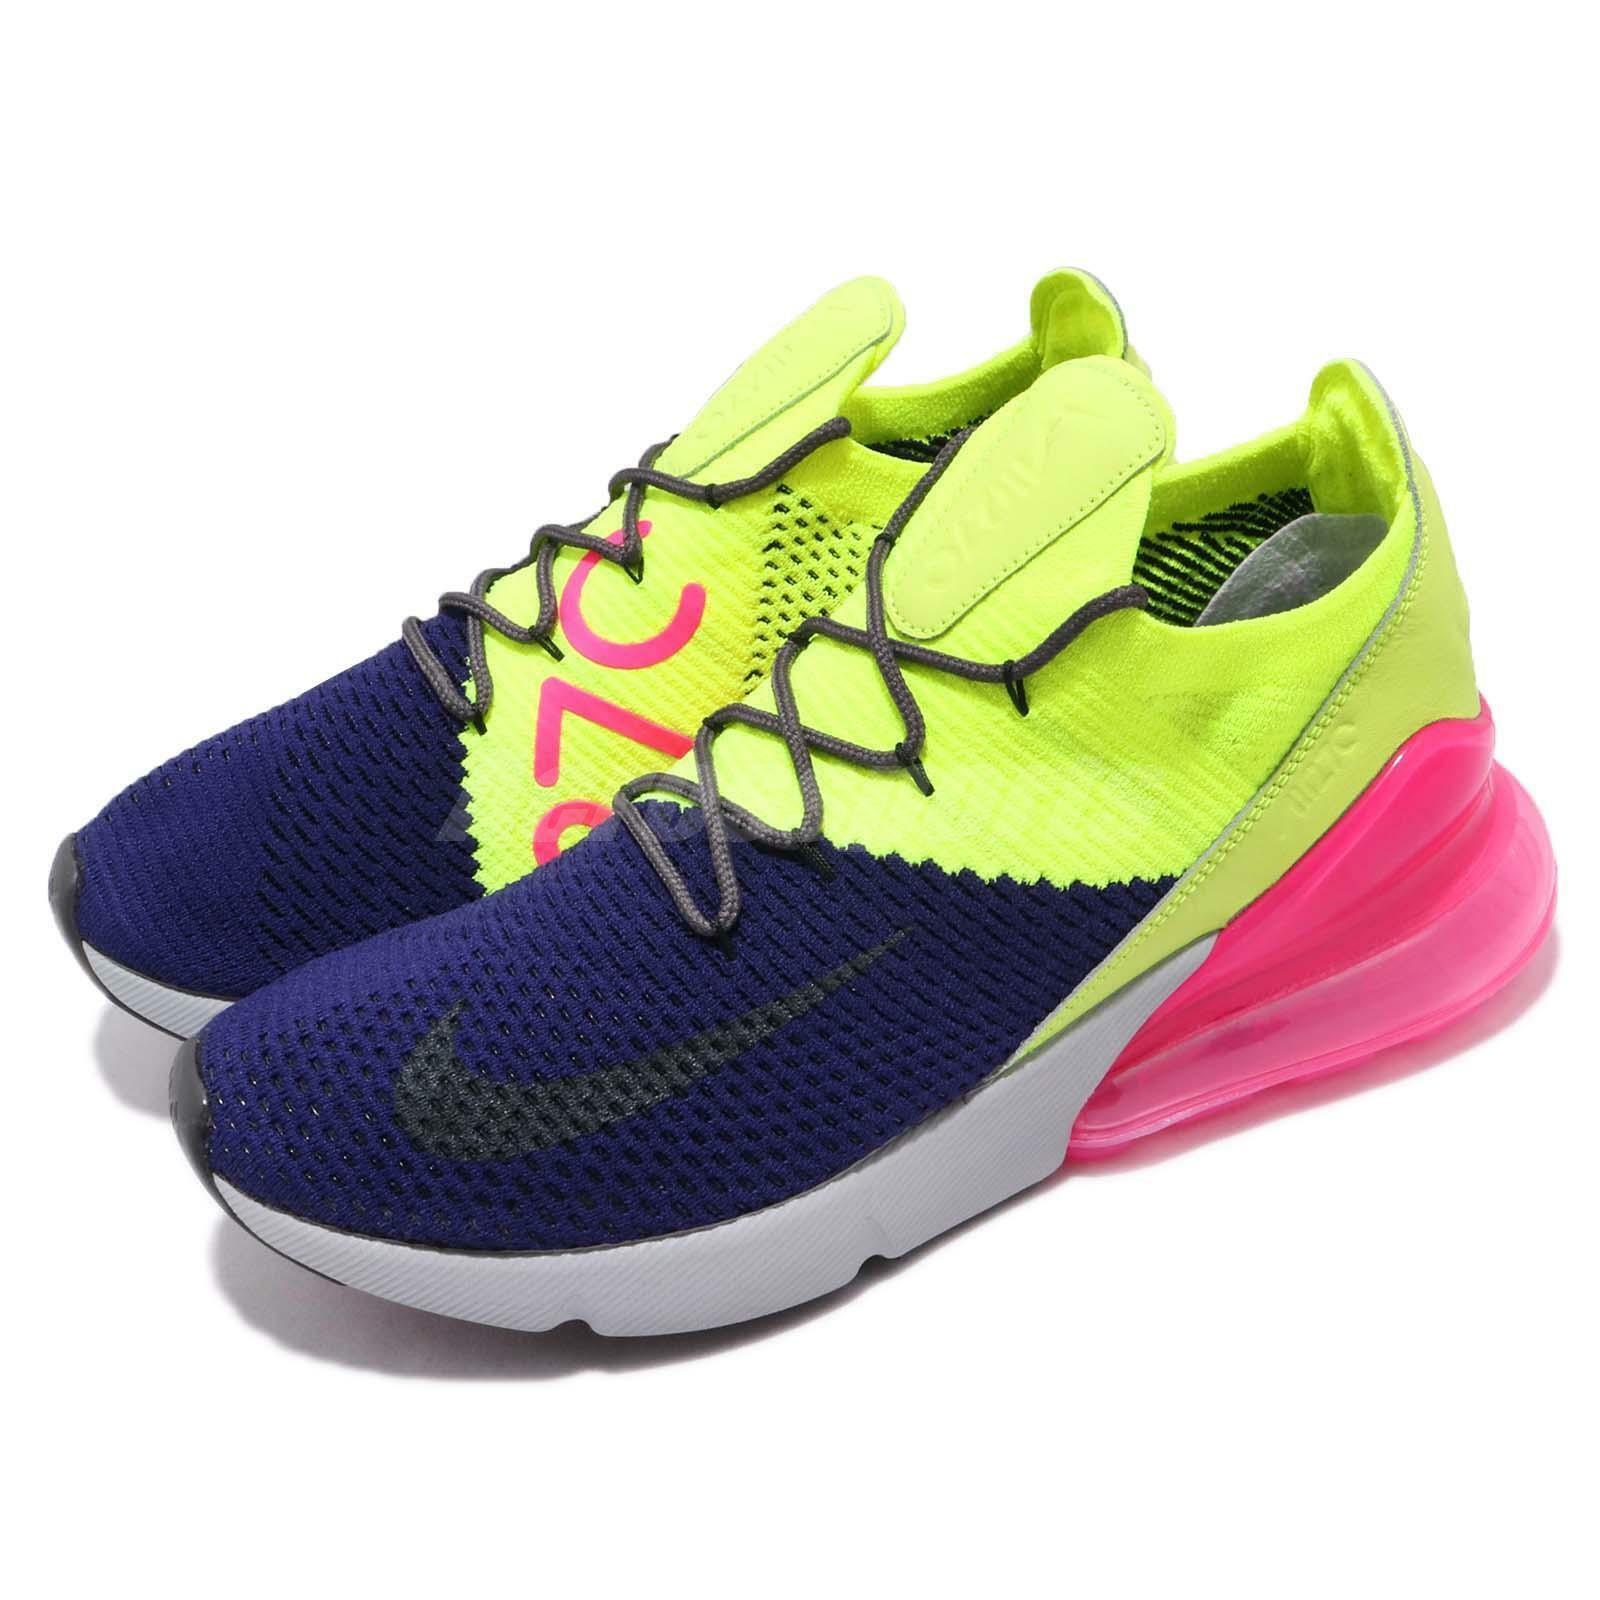 462ae43a20 Nike Air Max 270 Flyknit Multi-color Purple Men Running shoes Sneaker  AO1023-501